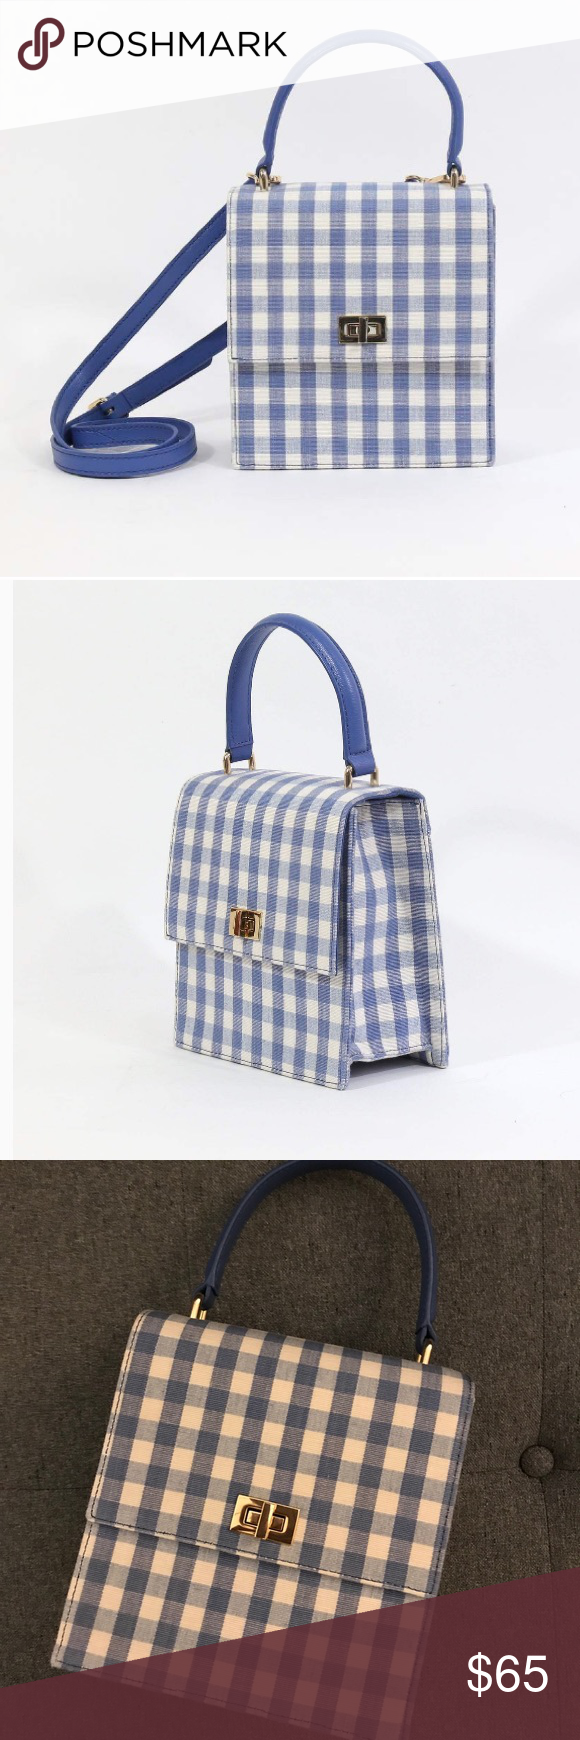 bff213ae5bc0 Neely + Chloe No. 19 Mini Lady Bag in blue gingham Adorable blue and white